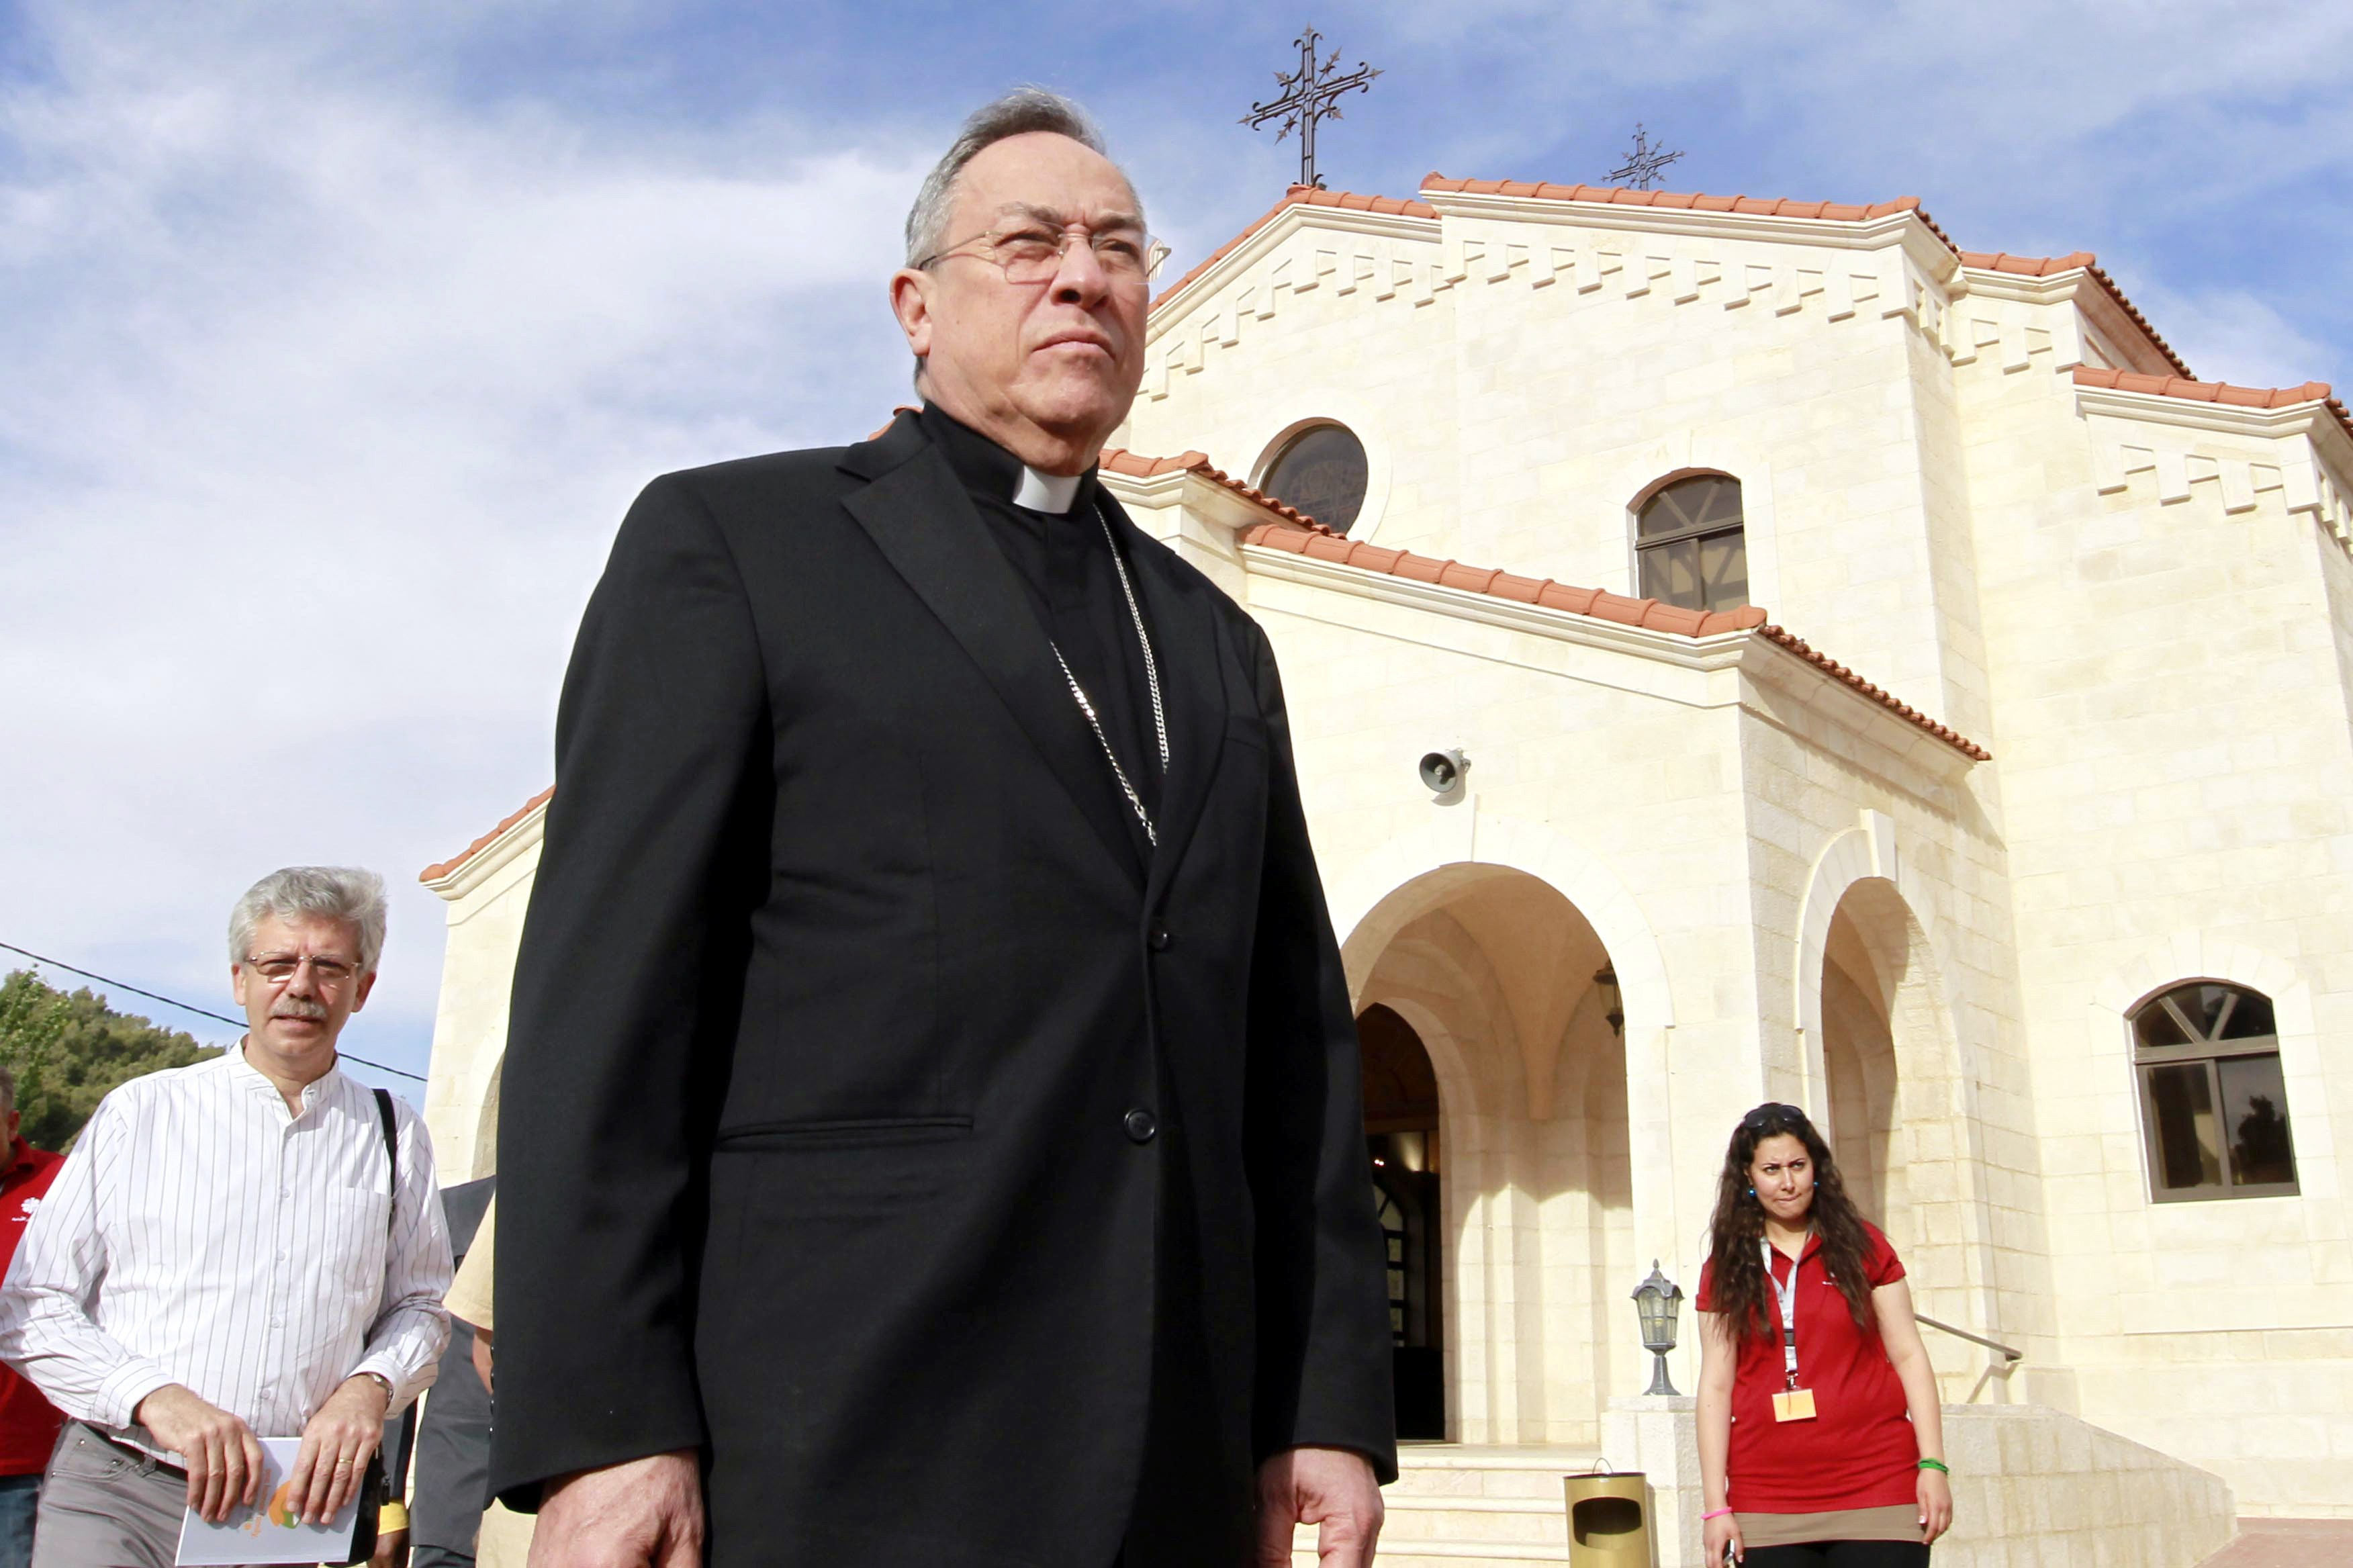 Cardinal Oscar Andres Rodriguez Maradiaga, President of Caritas Internationalis, looks on during a visit to the Regina Pacis Centre (Our Lady of Peace Church) in Amman, Jordan on May 18, 2014.